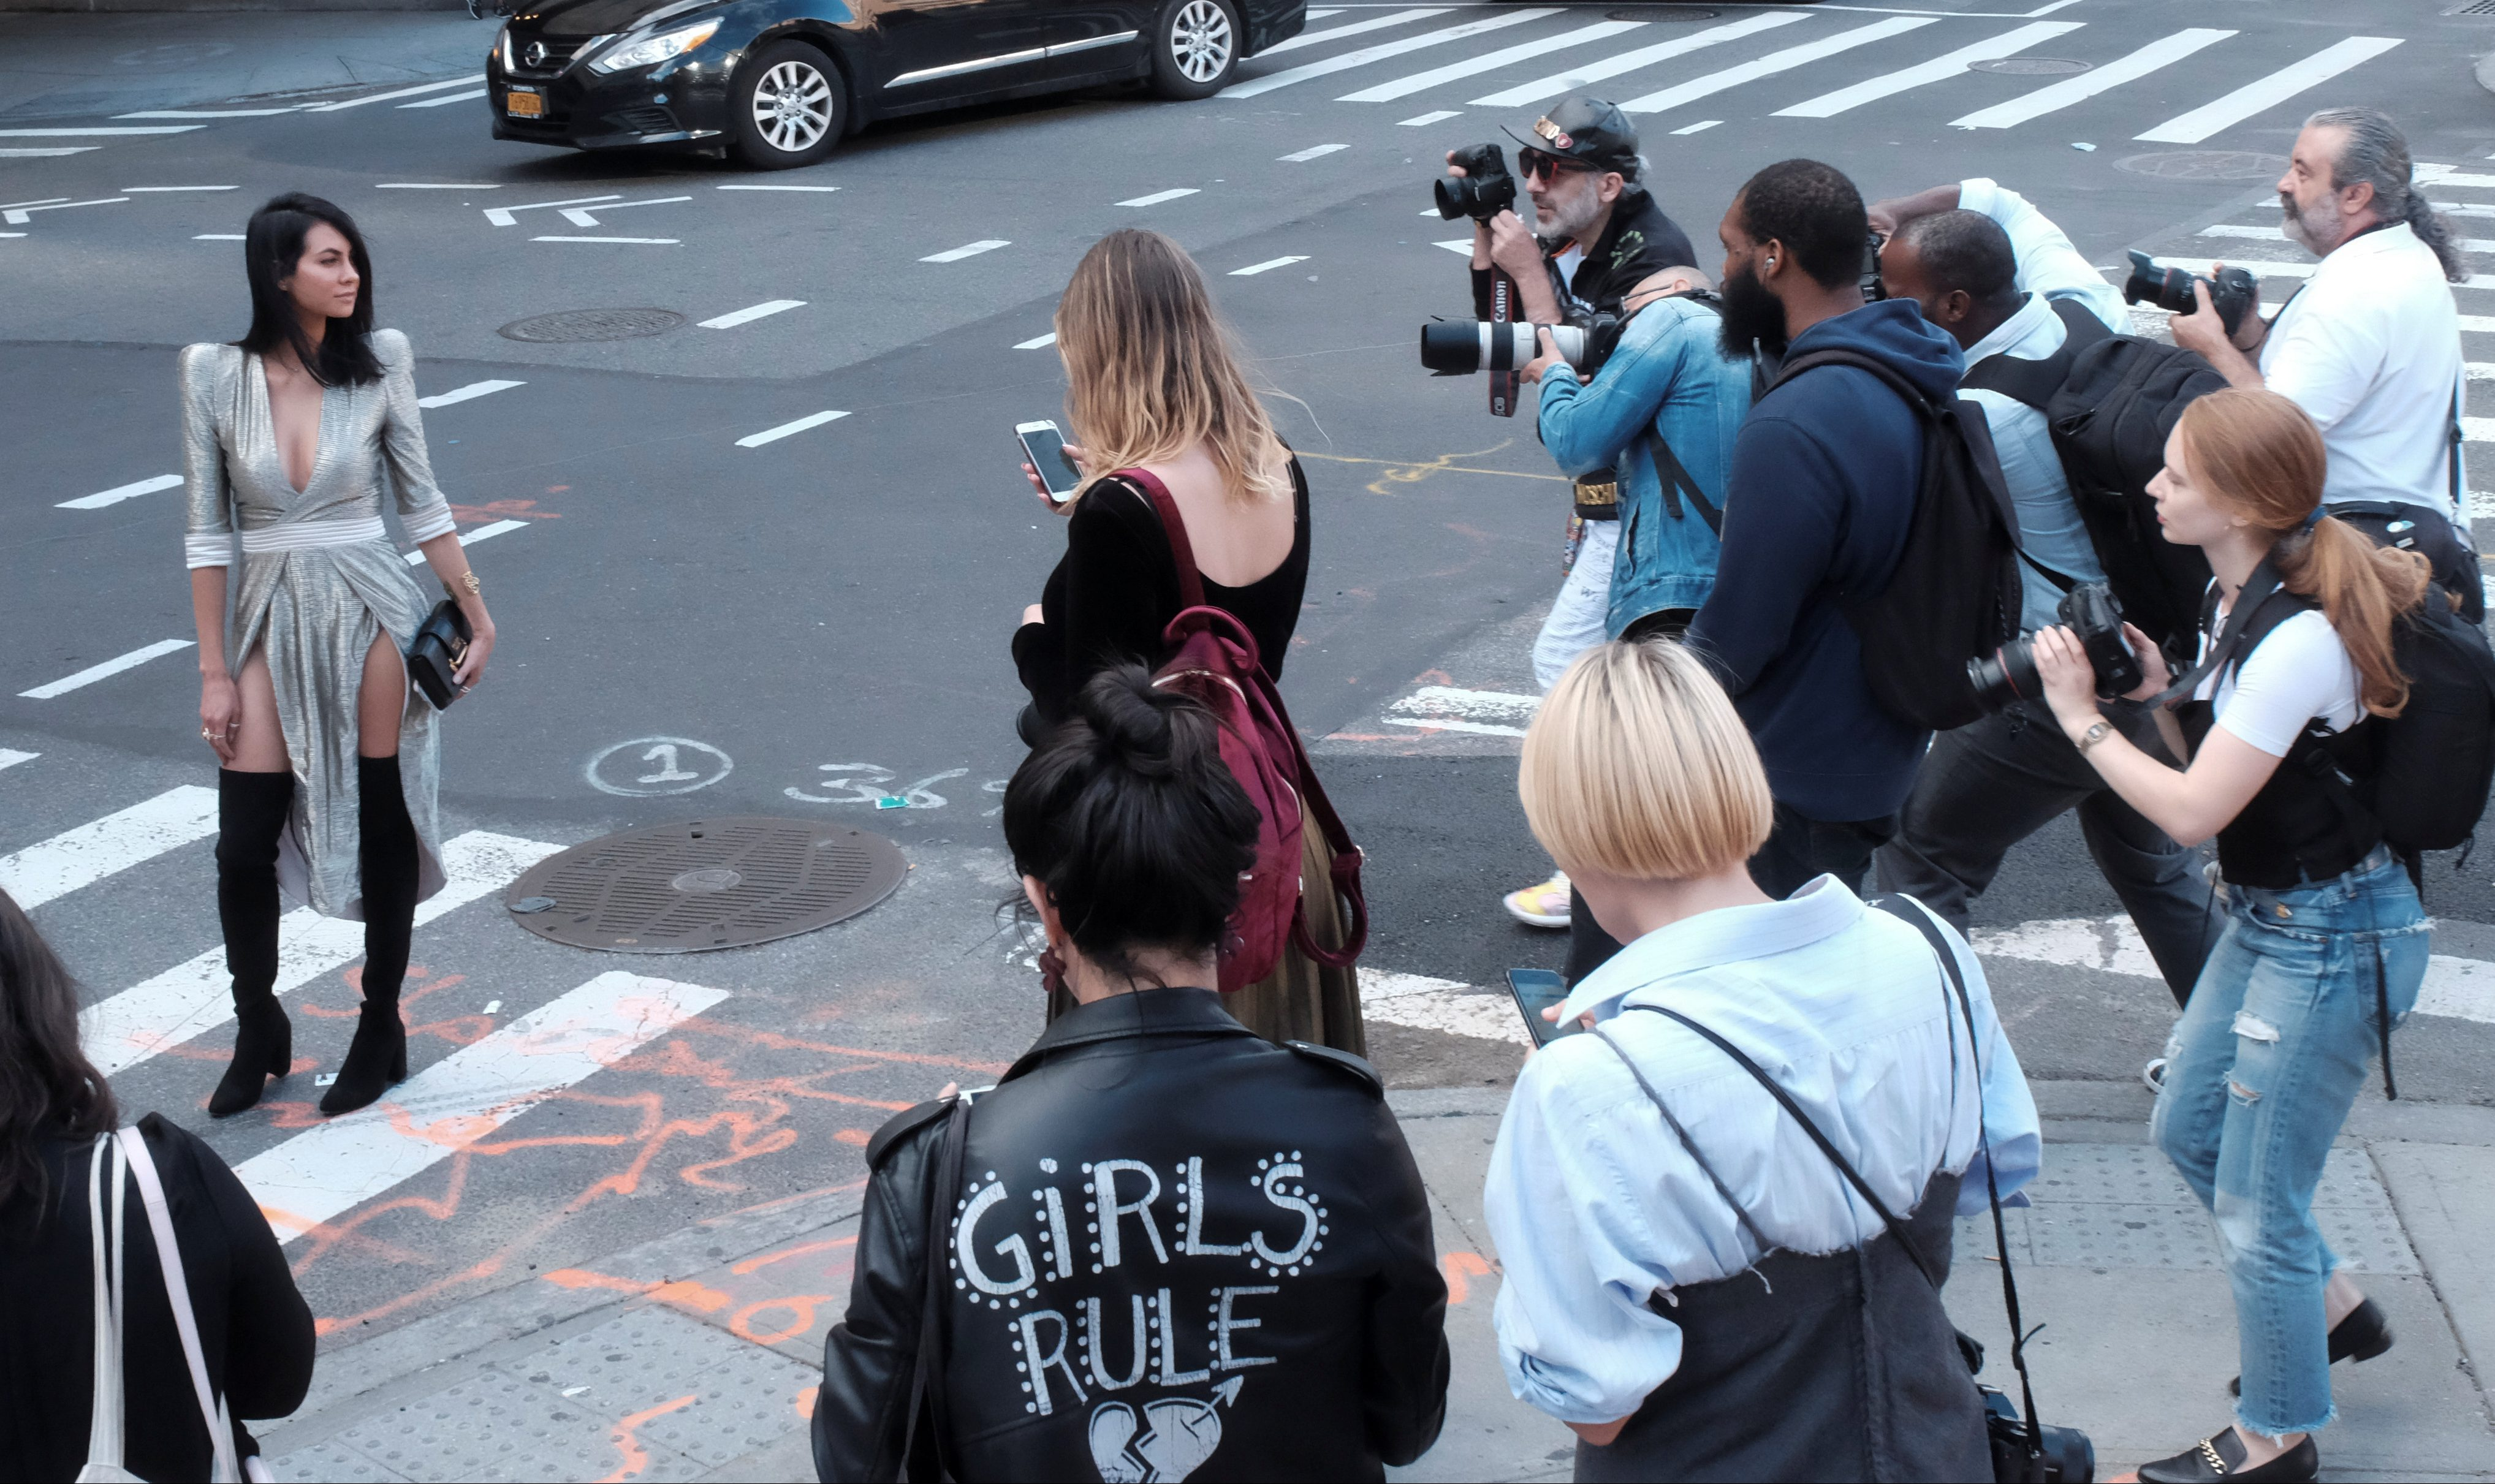 Photographers document street style outside Skylight Clarkson Square during New York Fashion Week in the Manhattan borough of New York City, U.S., September 8, 2017. REUTERS/Brenna Weeks - RC1A6A74BFD0